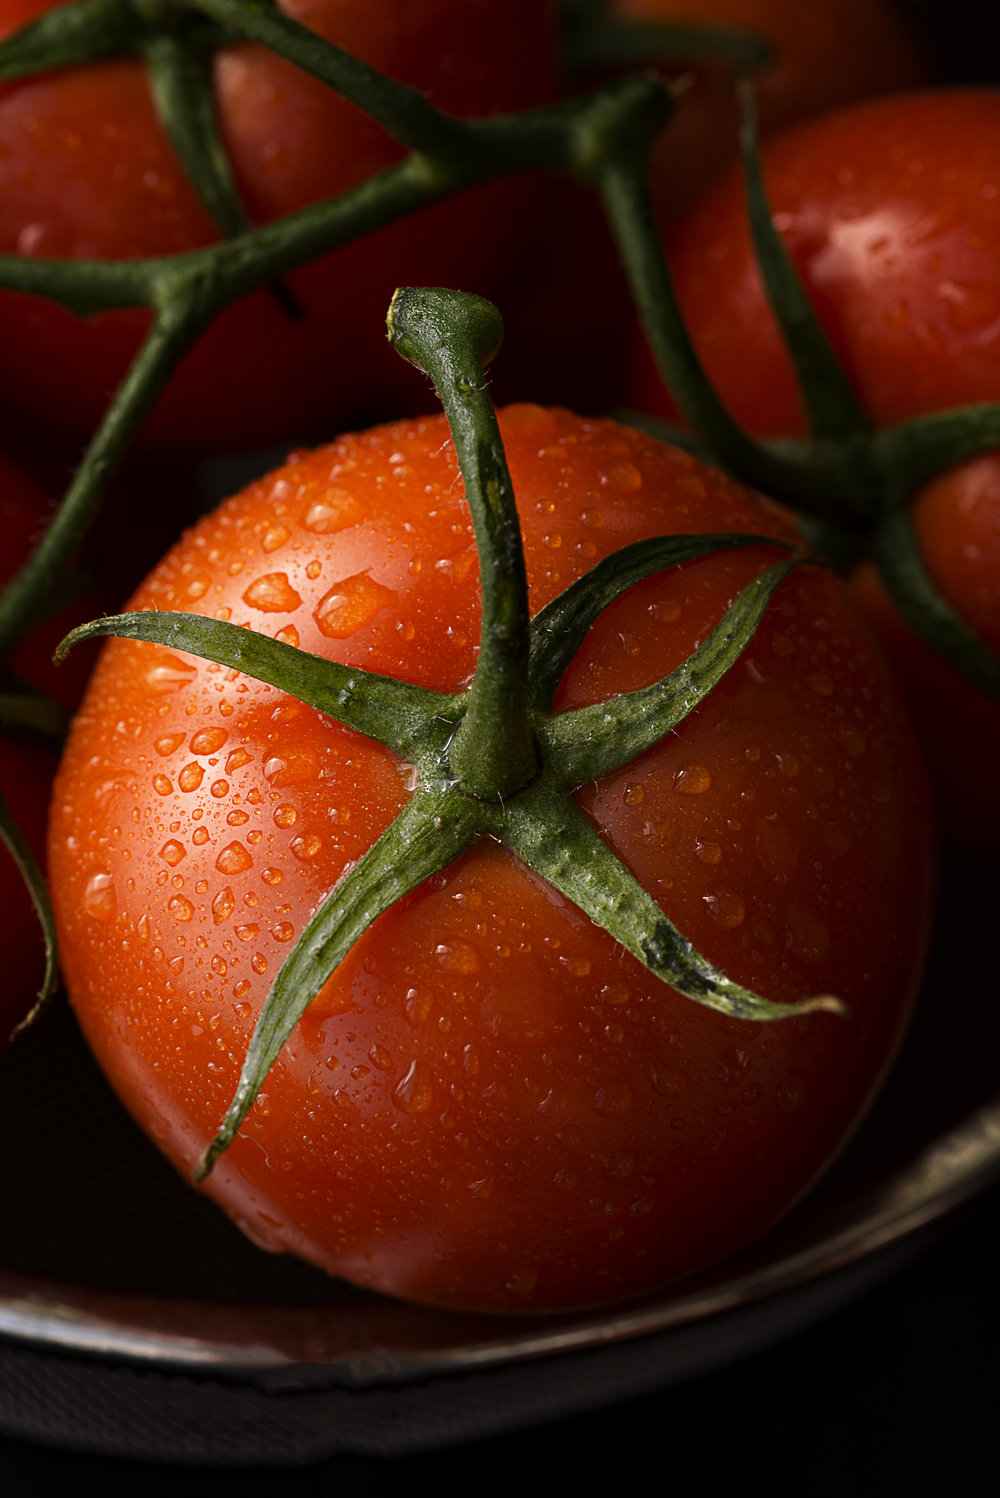 TomatoCloseUp3-HR-SimiJois-2017.jpg